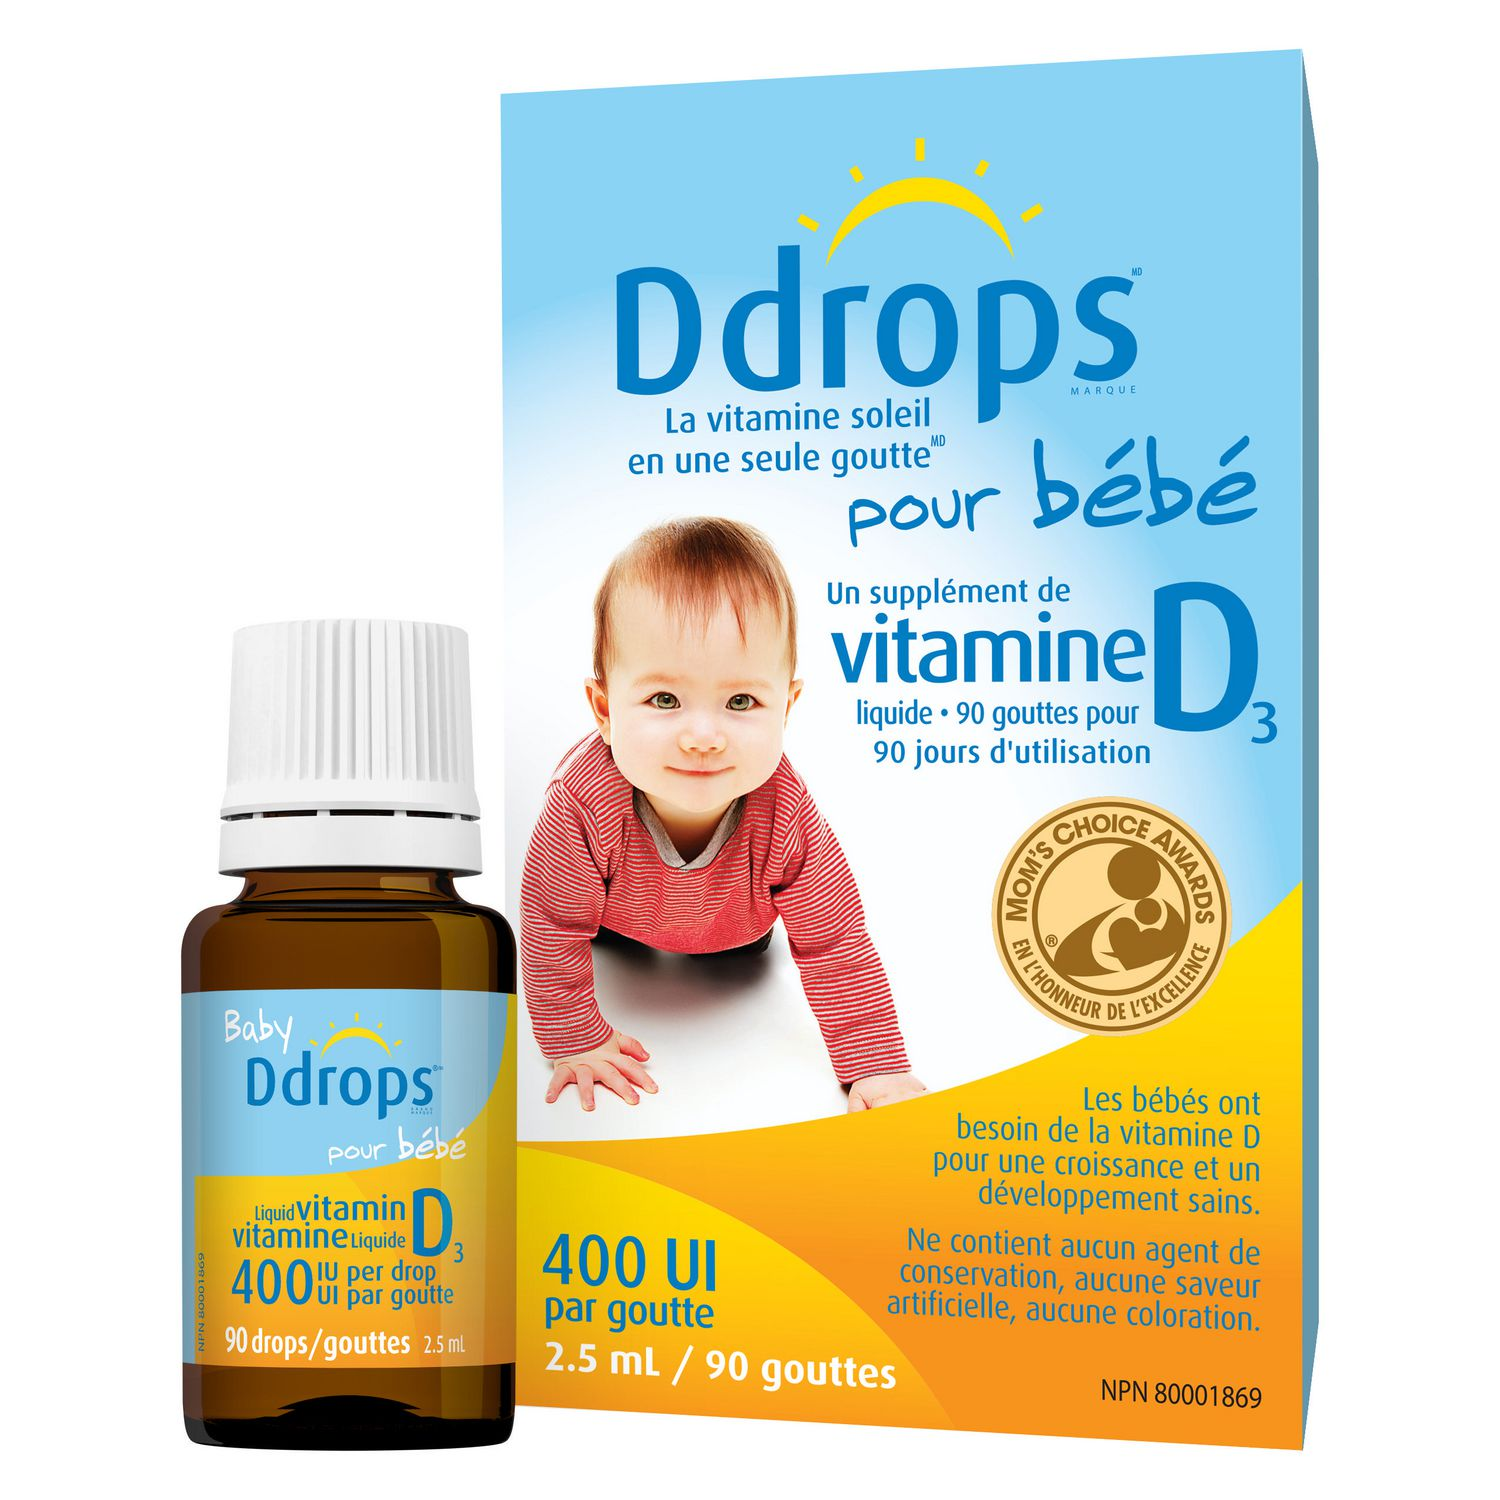 Vitamin D for babies. Need or not 3